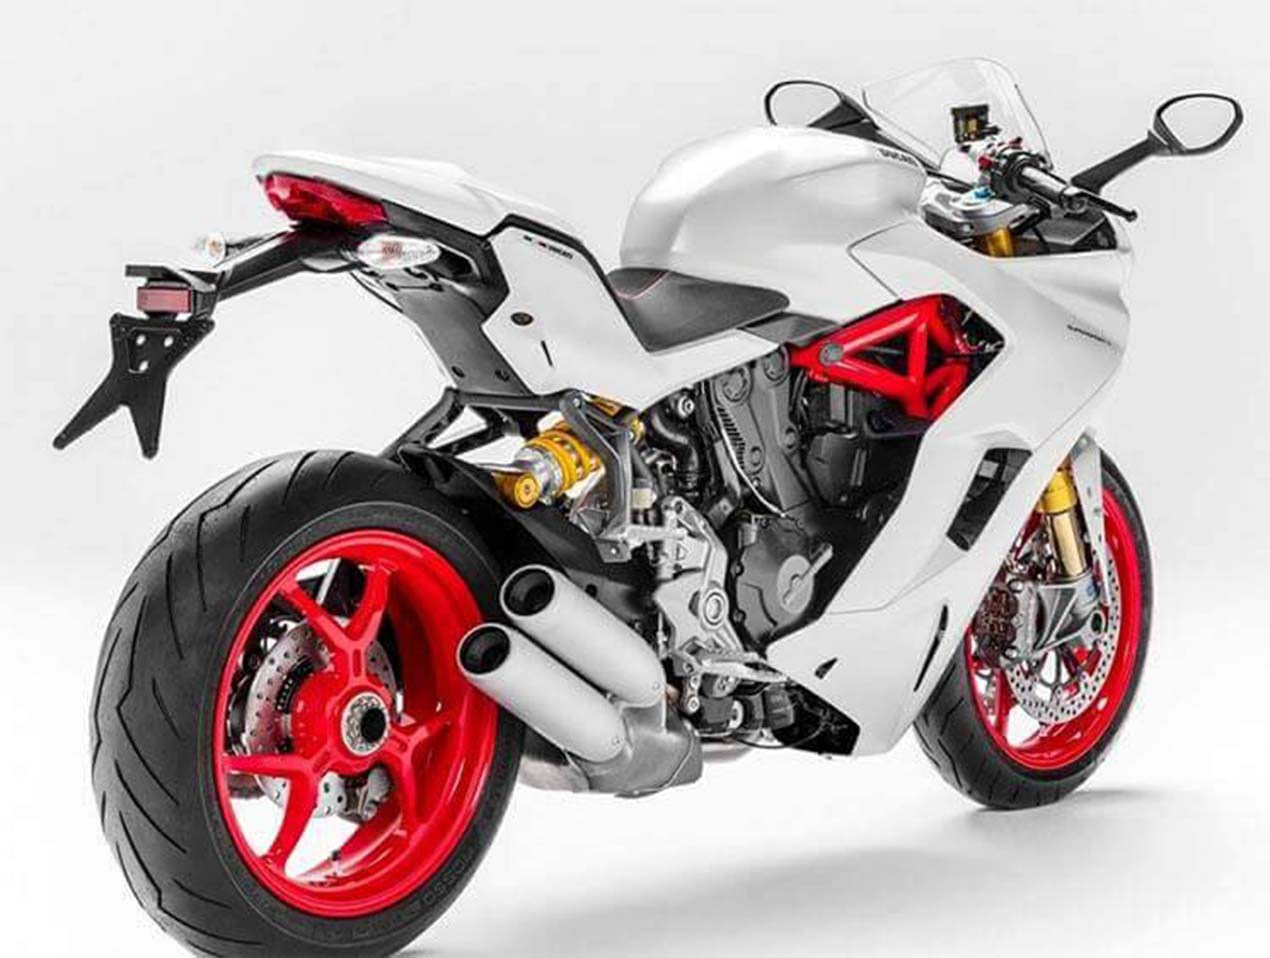 2017 Ducati SuperSport INTERMOT leak 03 1